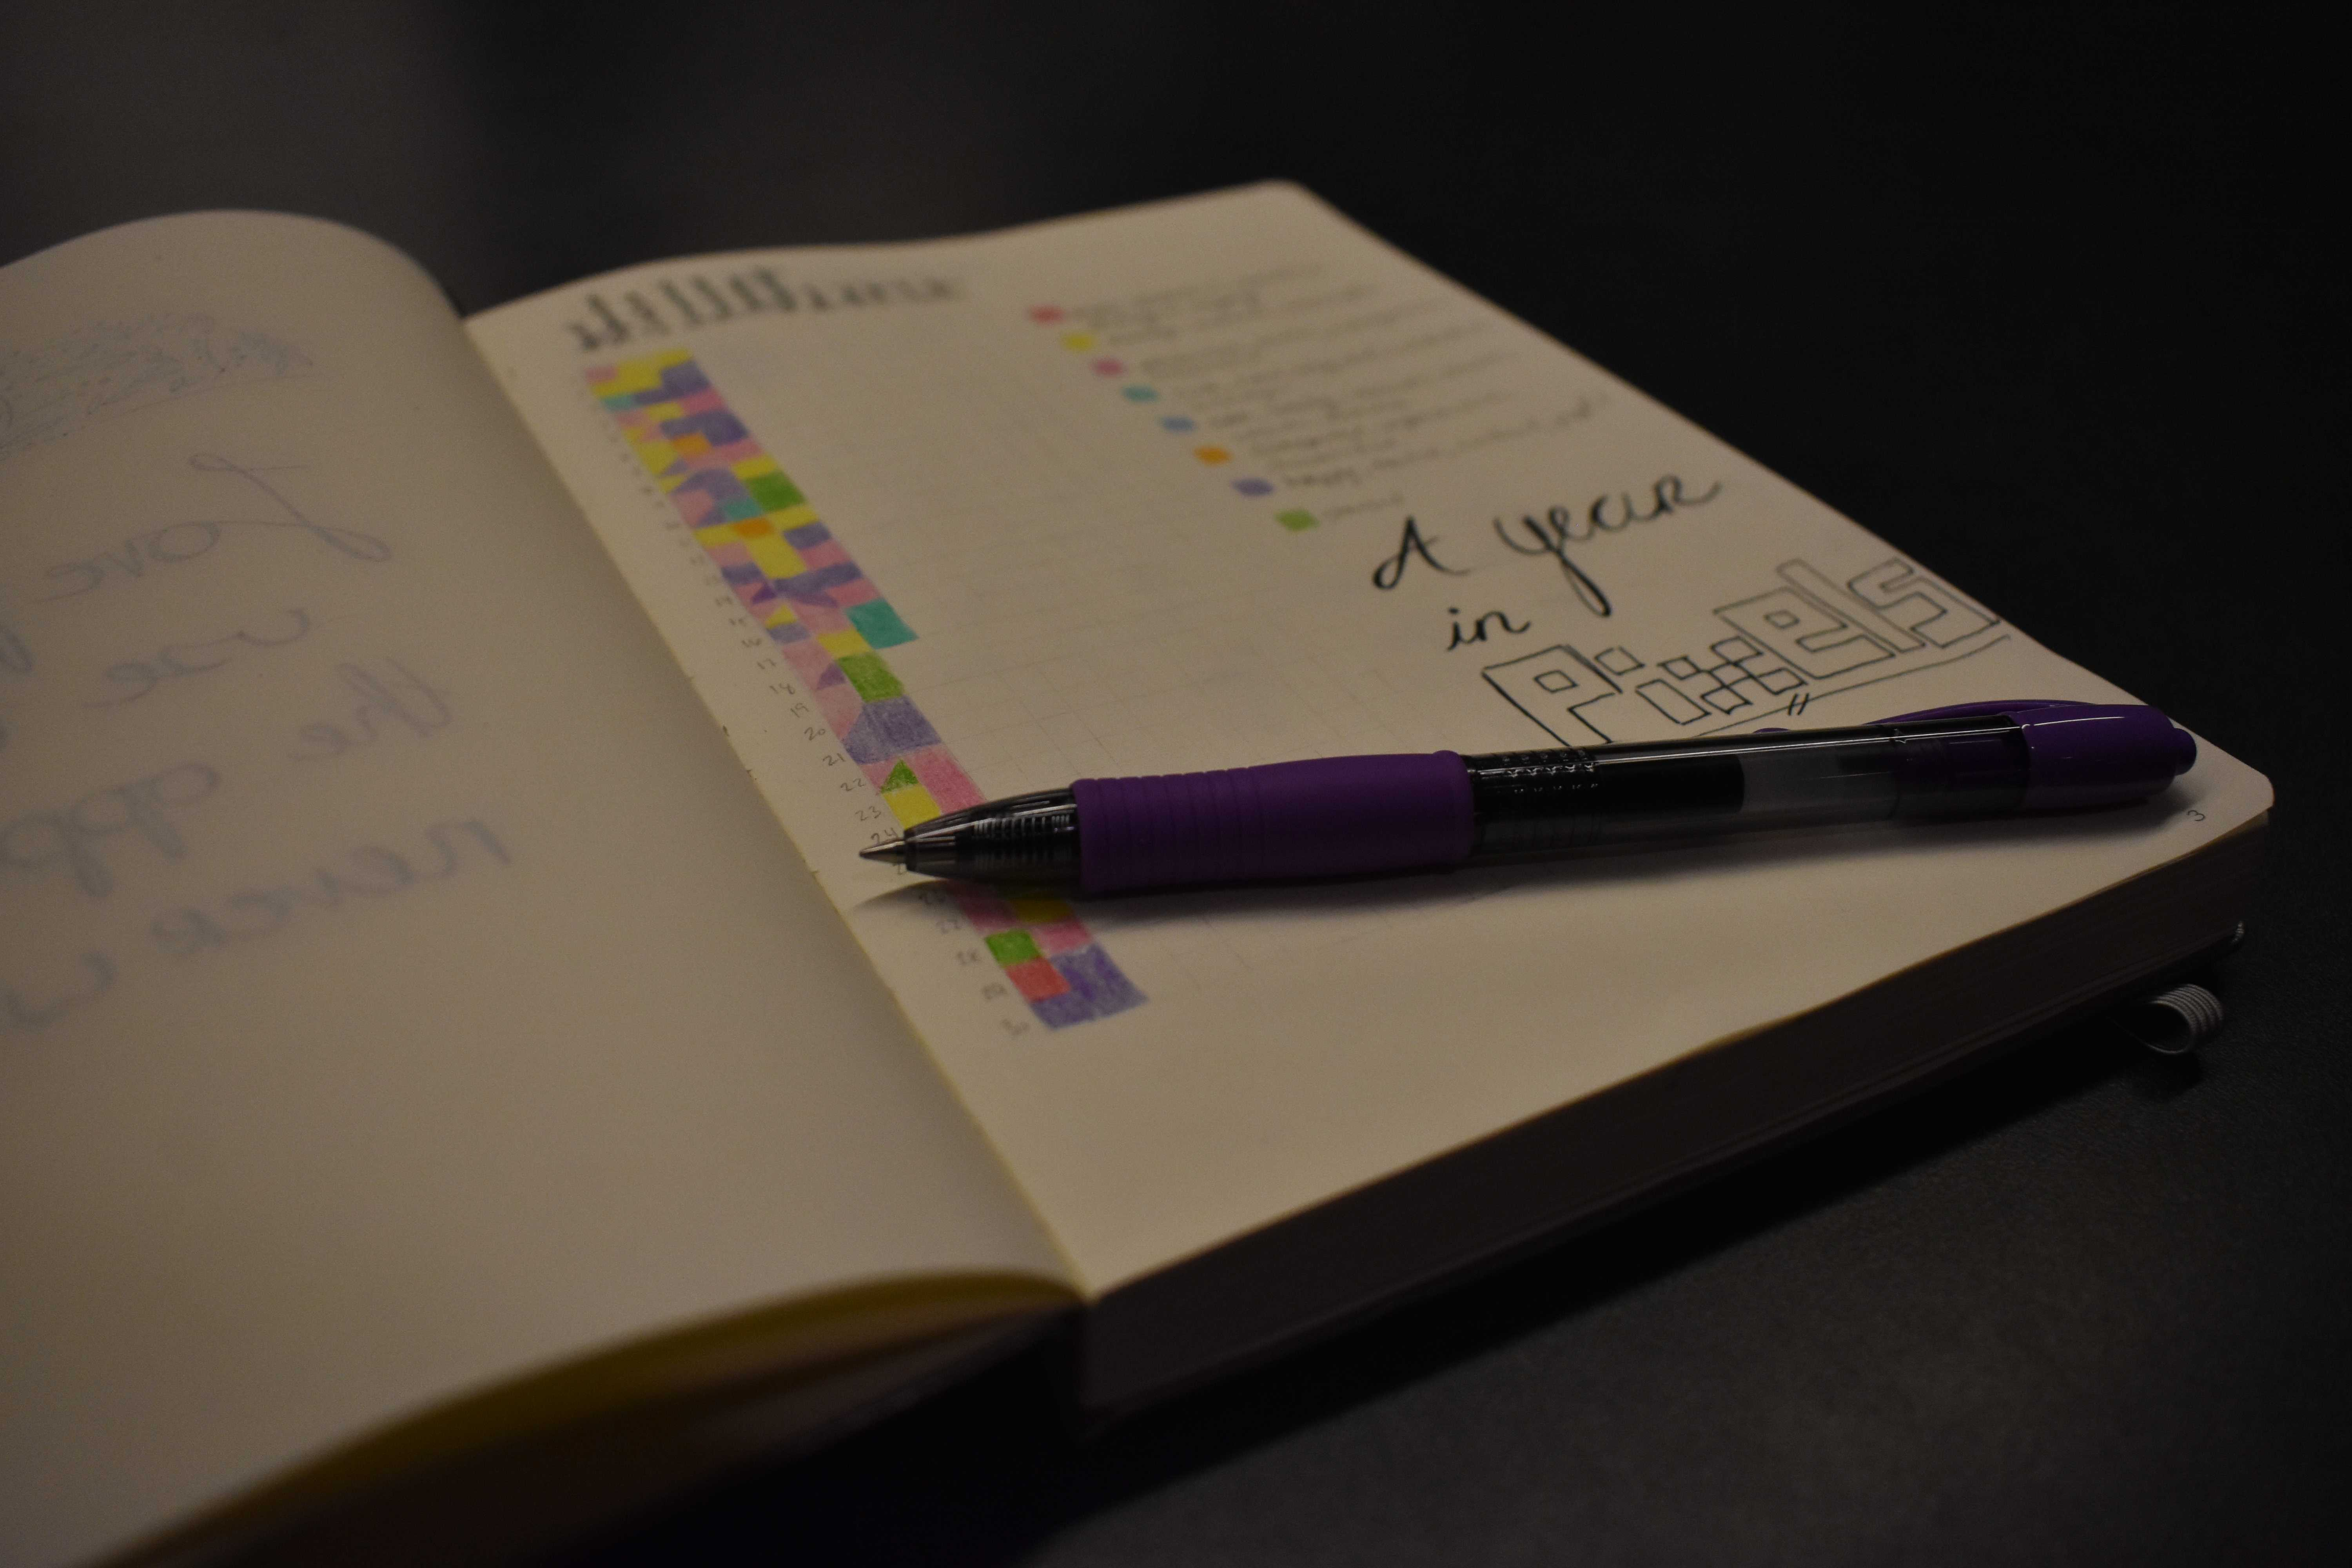 ABBY FULLENKAMP Bullet journals often incorporate habit trackers, which can be color-coded by mood. All you need to bullet journal is a notebook and a pen.